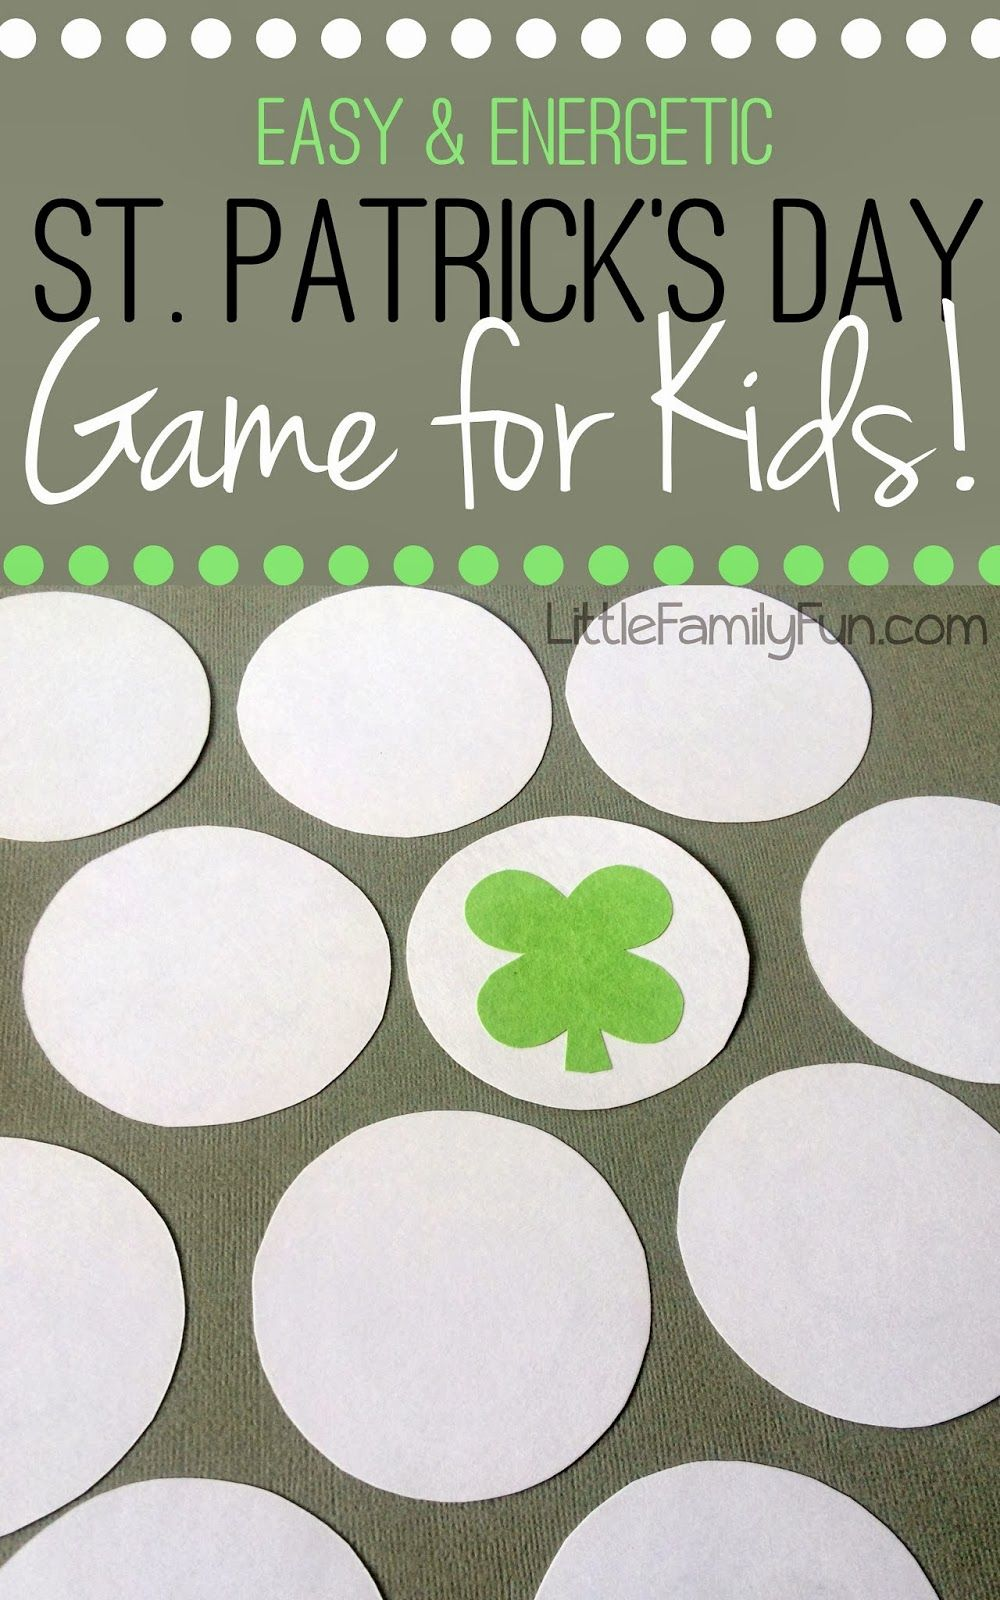 Easy & Energetic St. Patrick's Day Game for Kids!